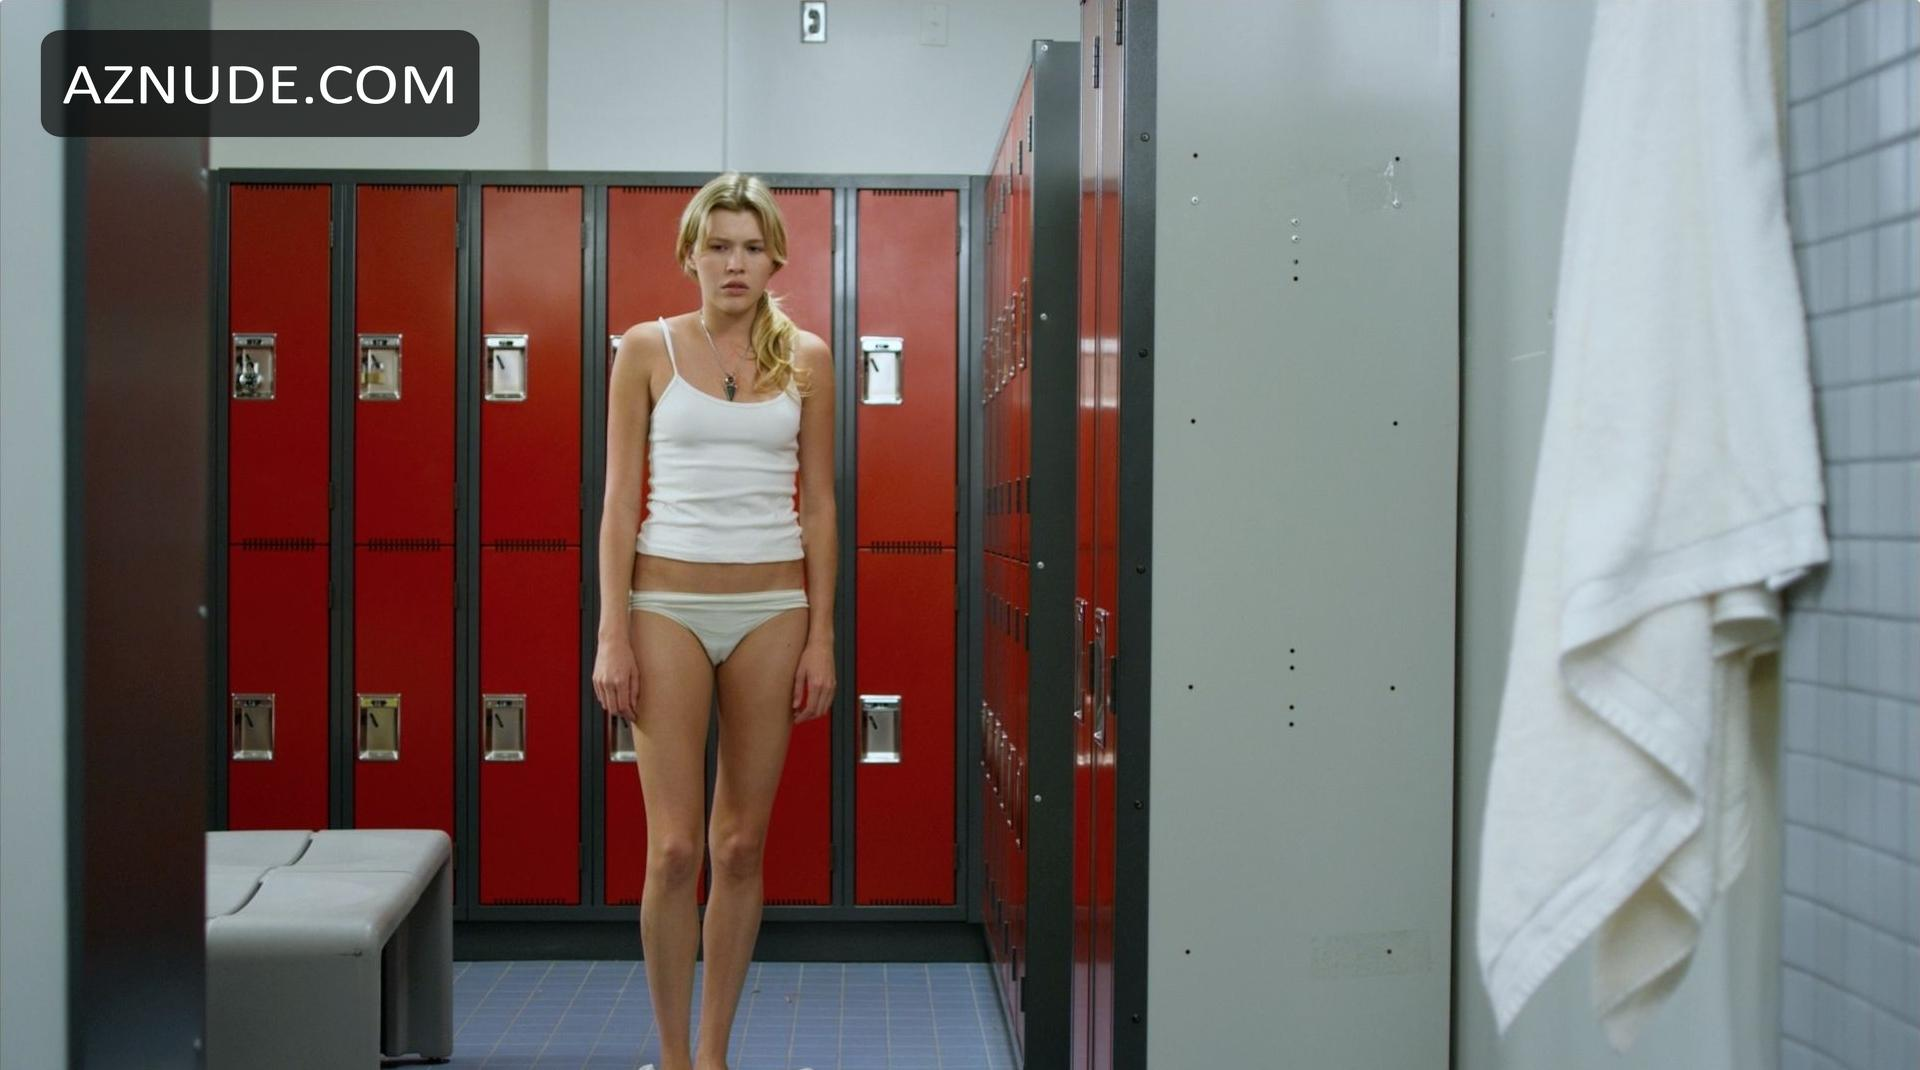 Browse Celebrity Locker Images - Page 1 - AZNude